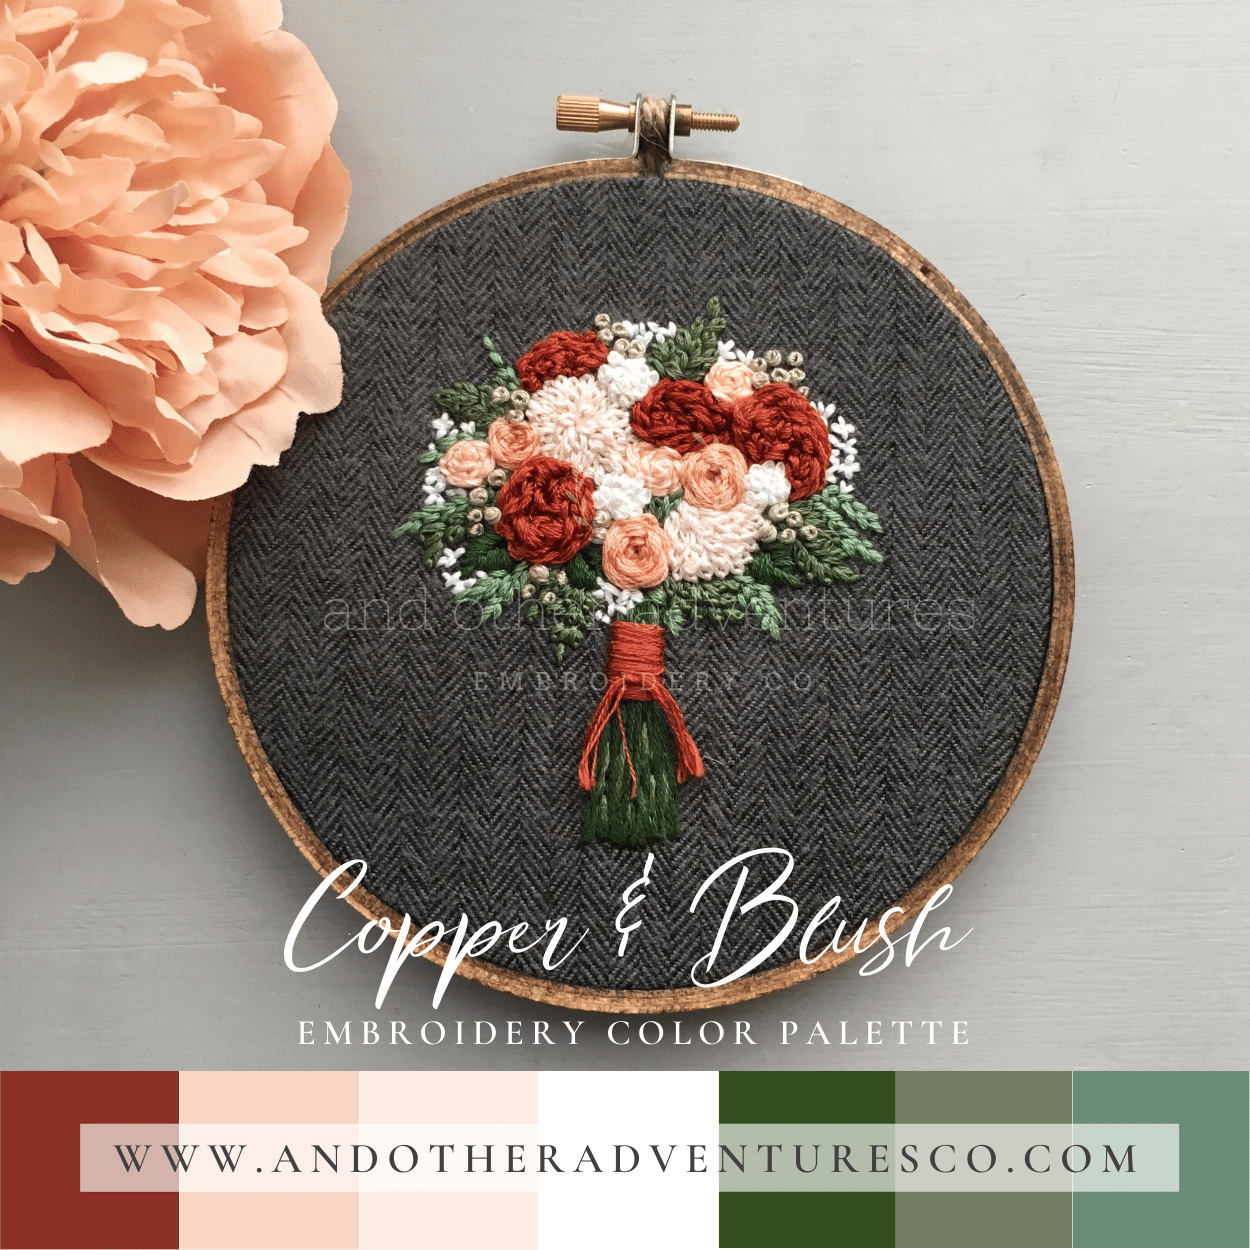 Copper & Blush Hand Embroidery Color Palette by And Other Adventures Embroidery Co